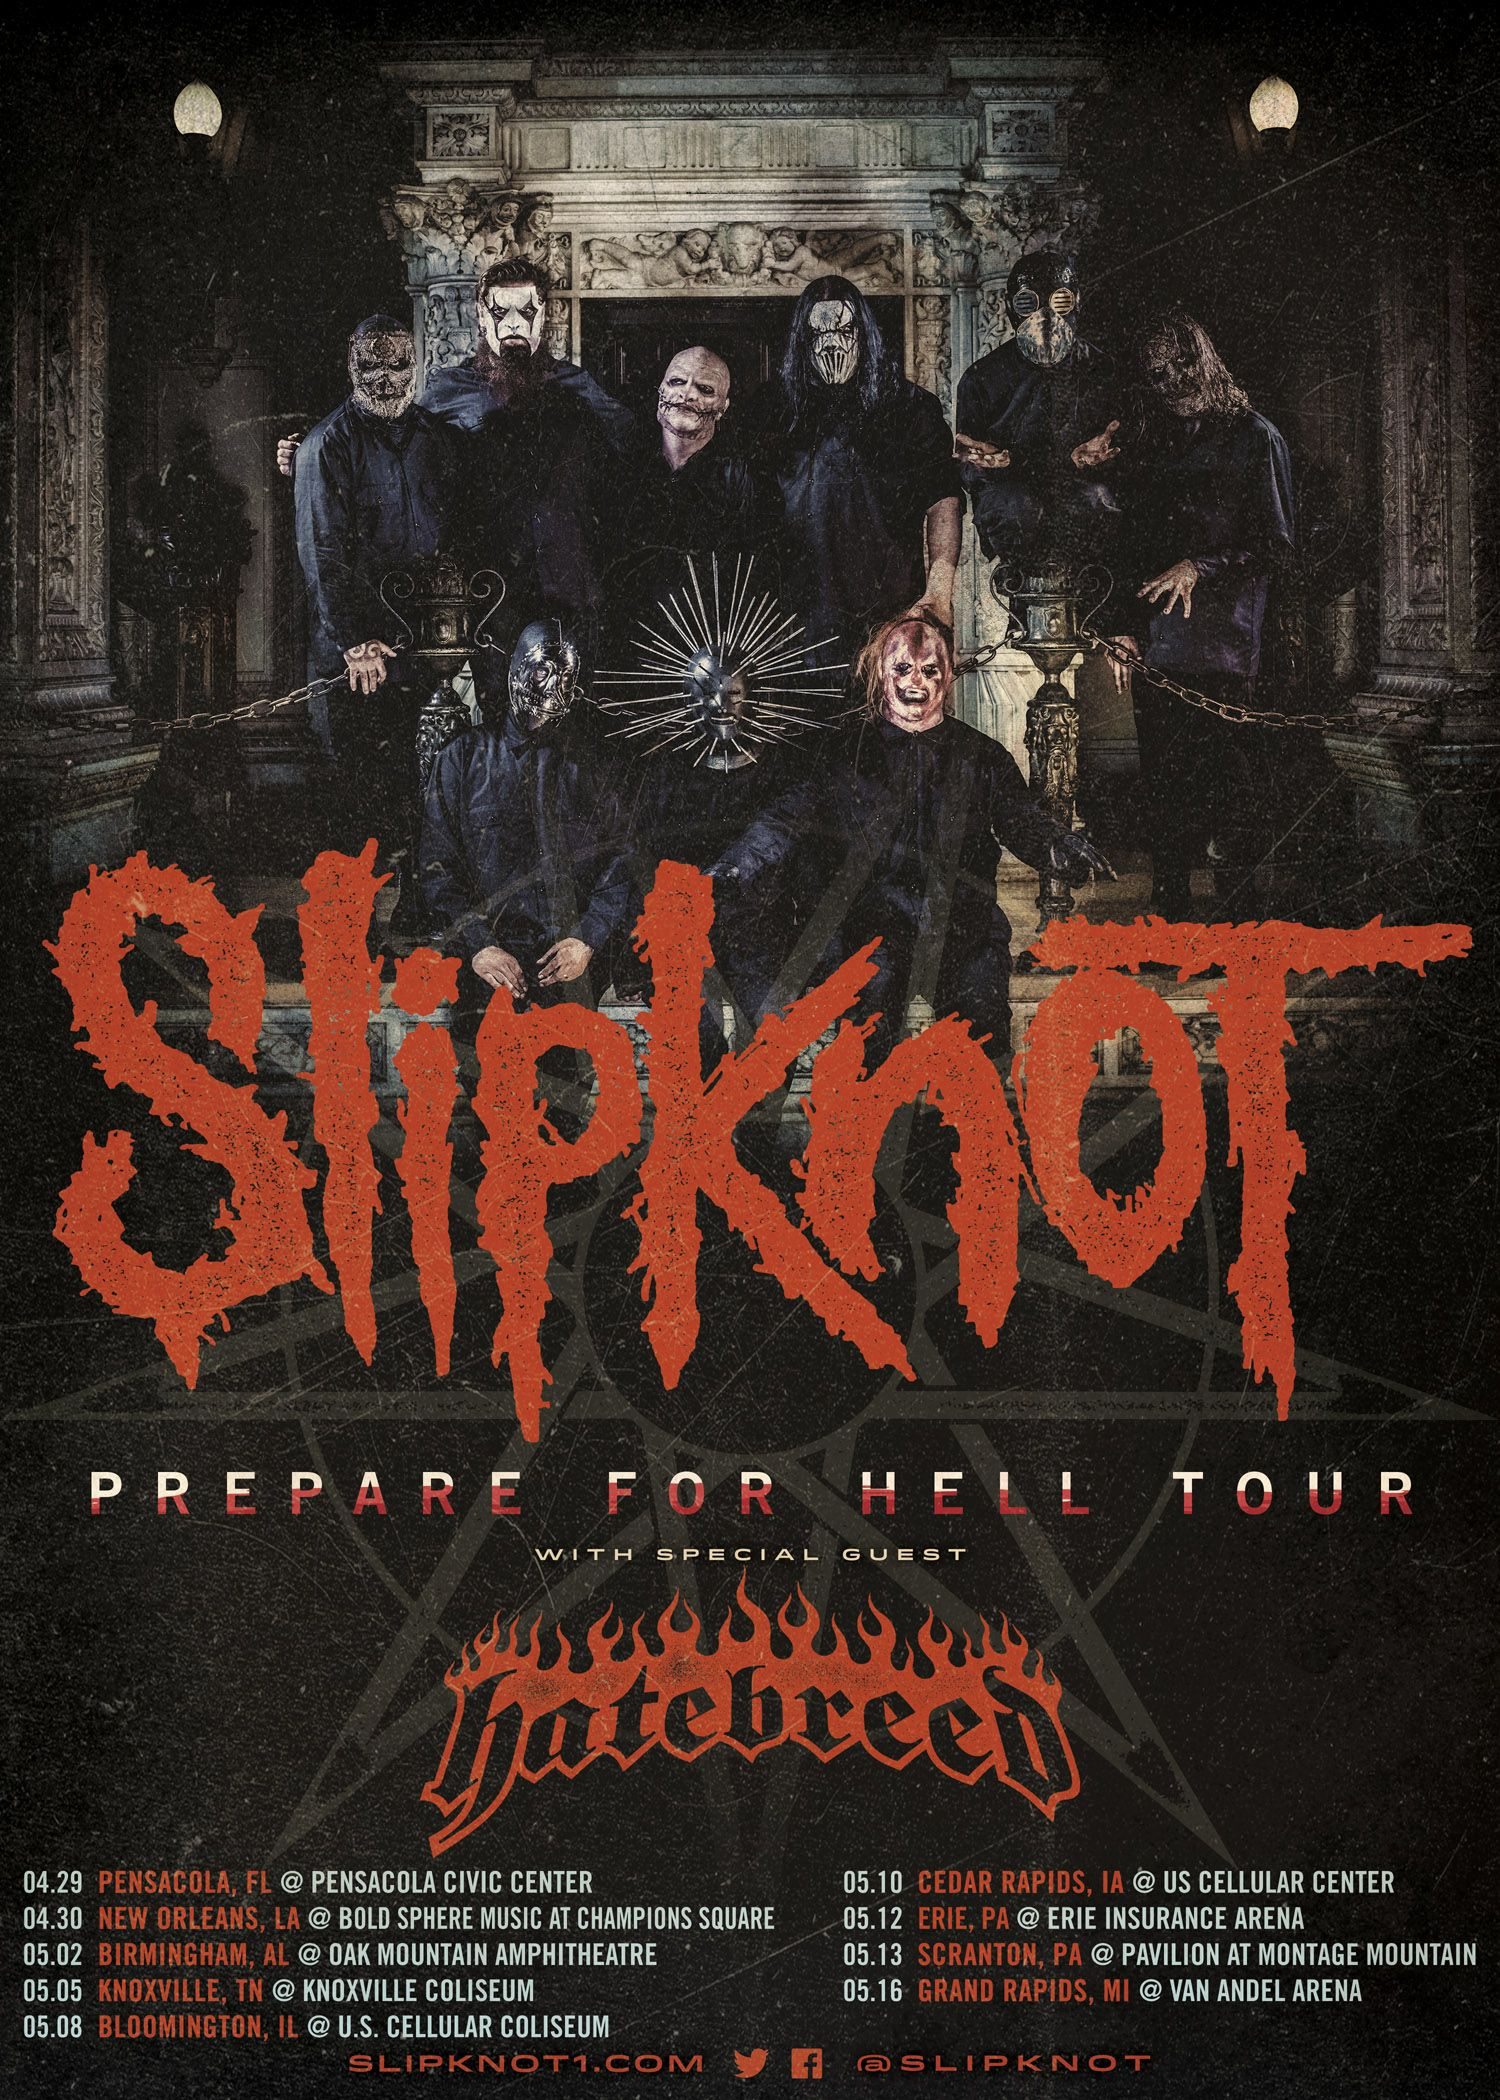 Slipknot Tour Posters Bands On Tour Tour Posters Slipknot Tour